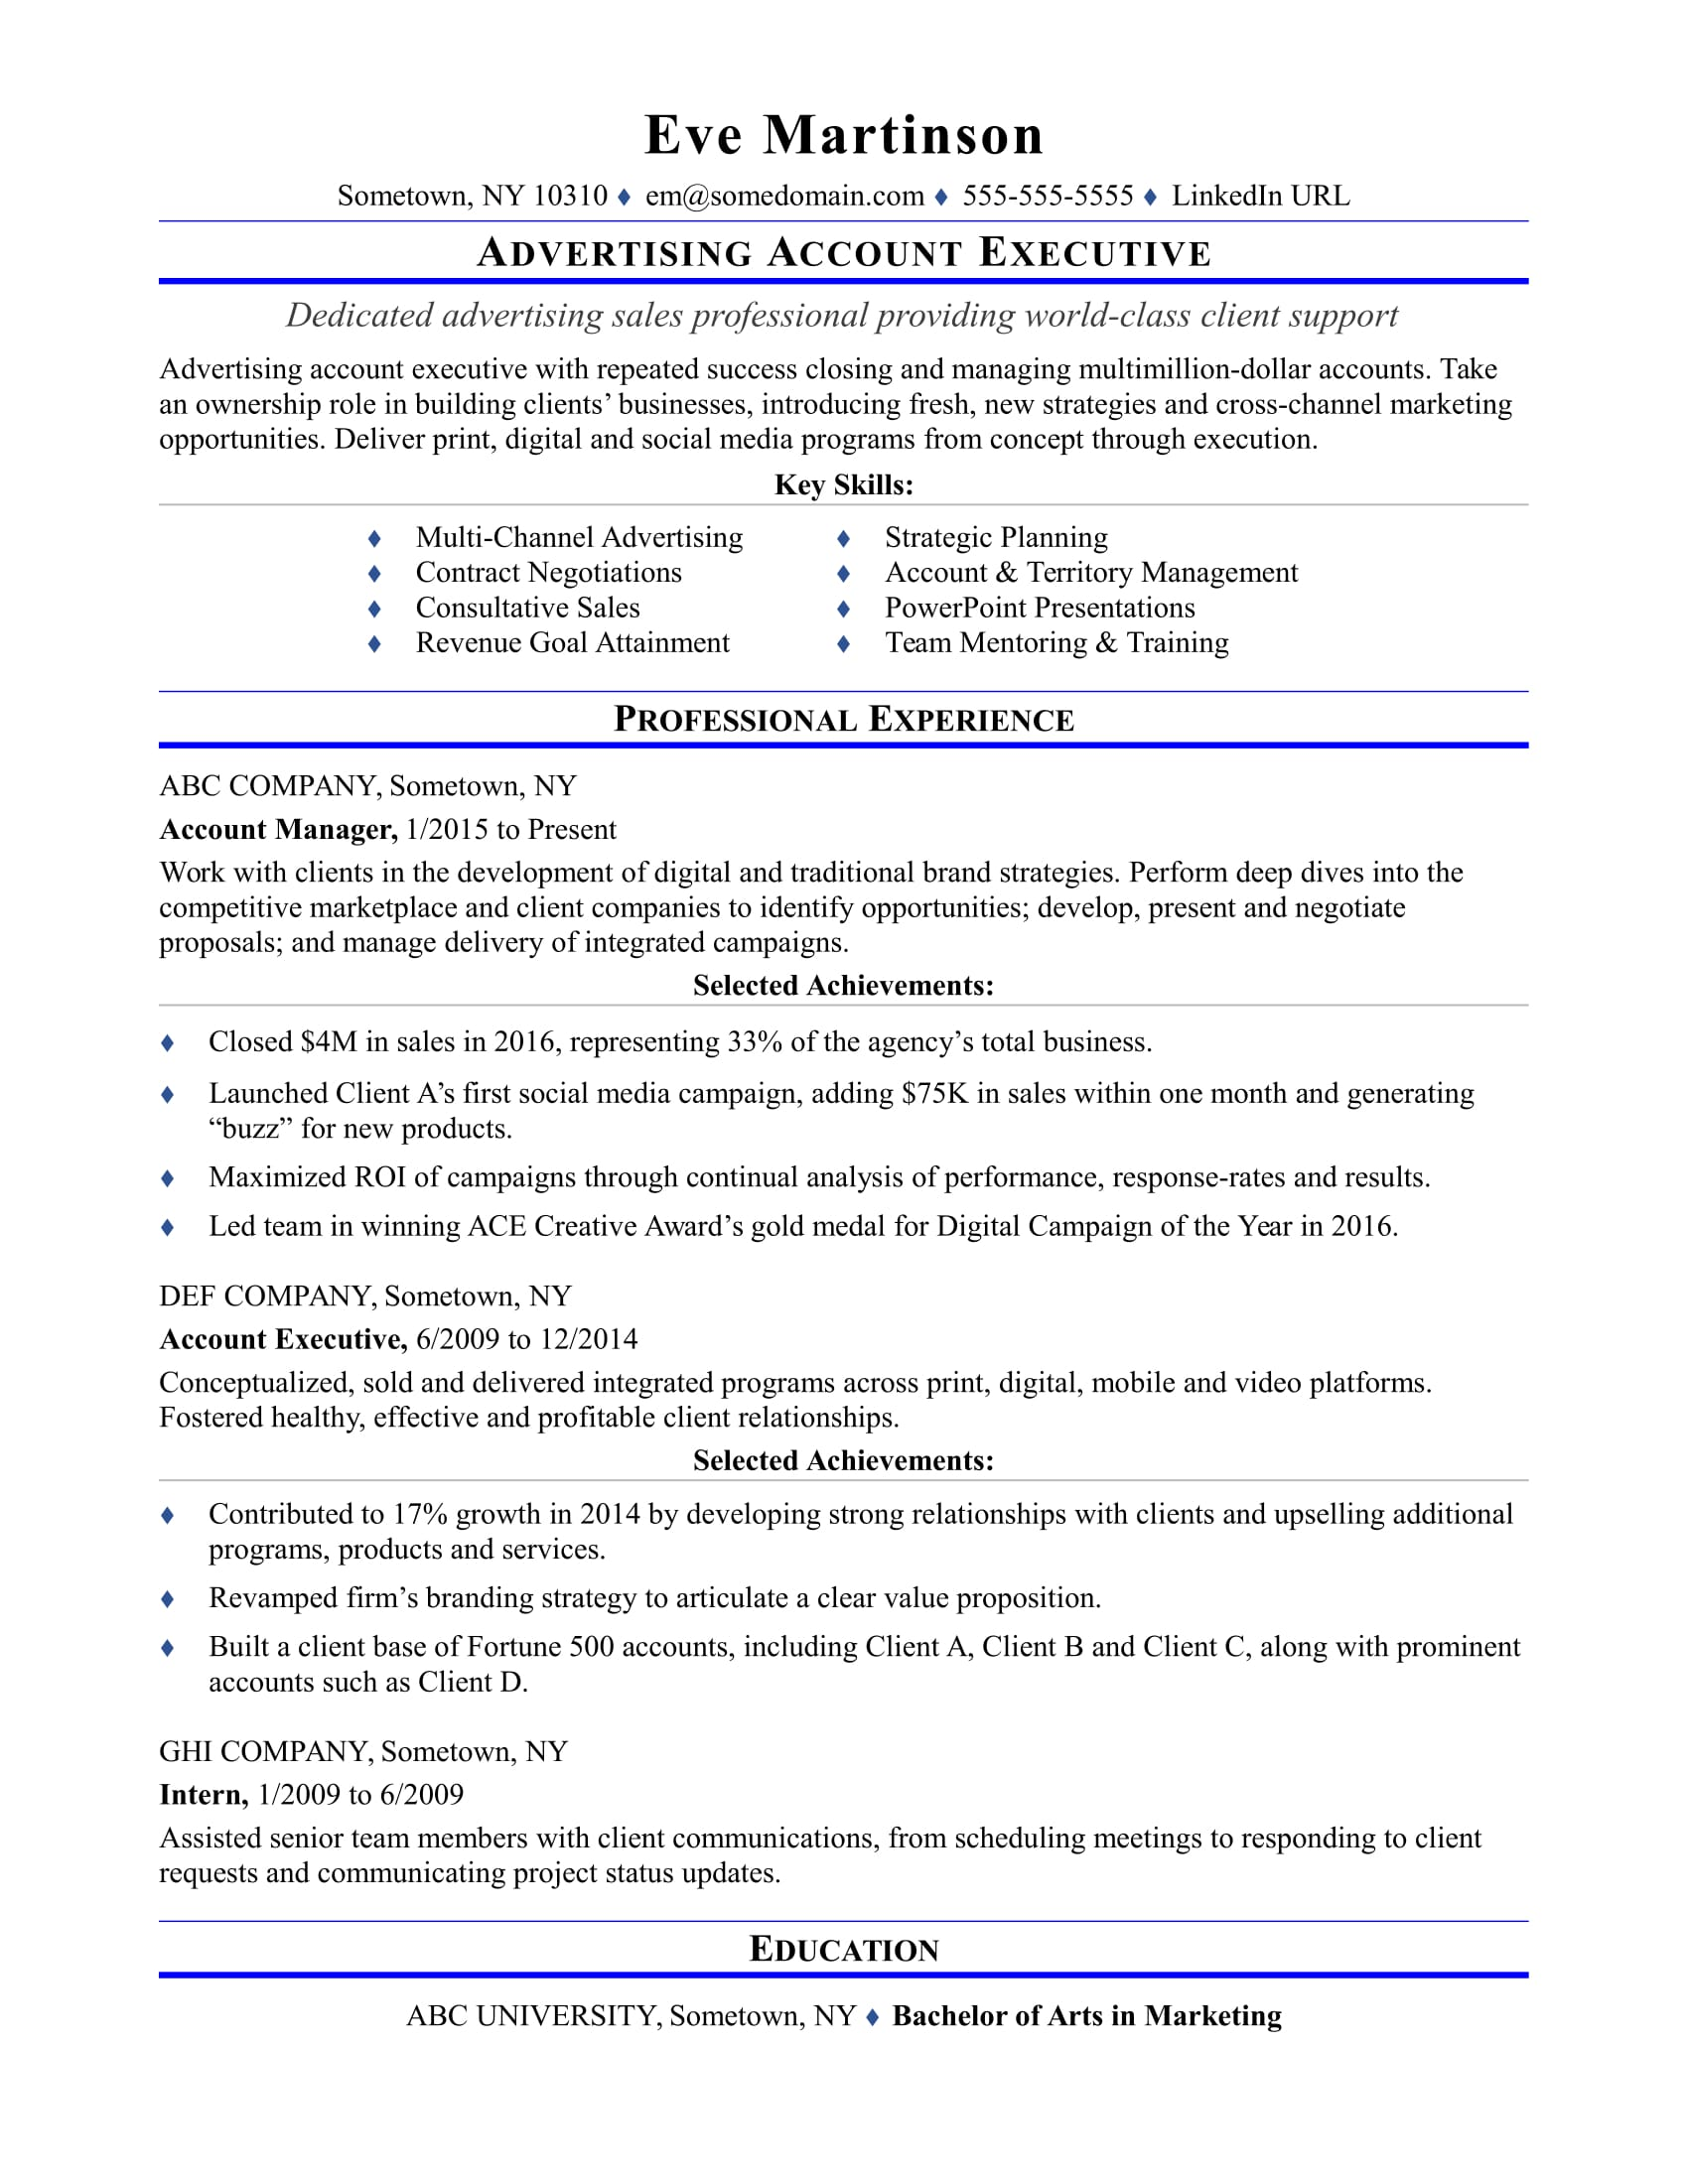 sample resume for an advertising account executive monster simple two column template Resume Account Executive Resume